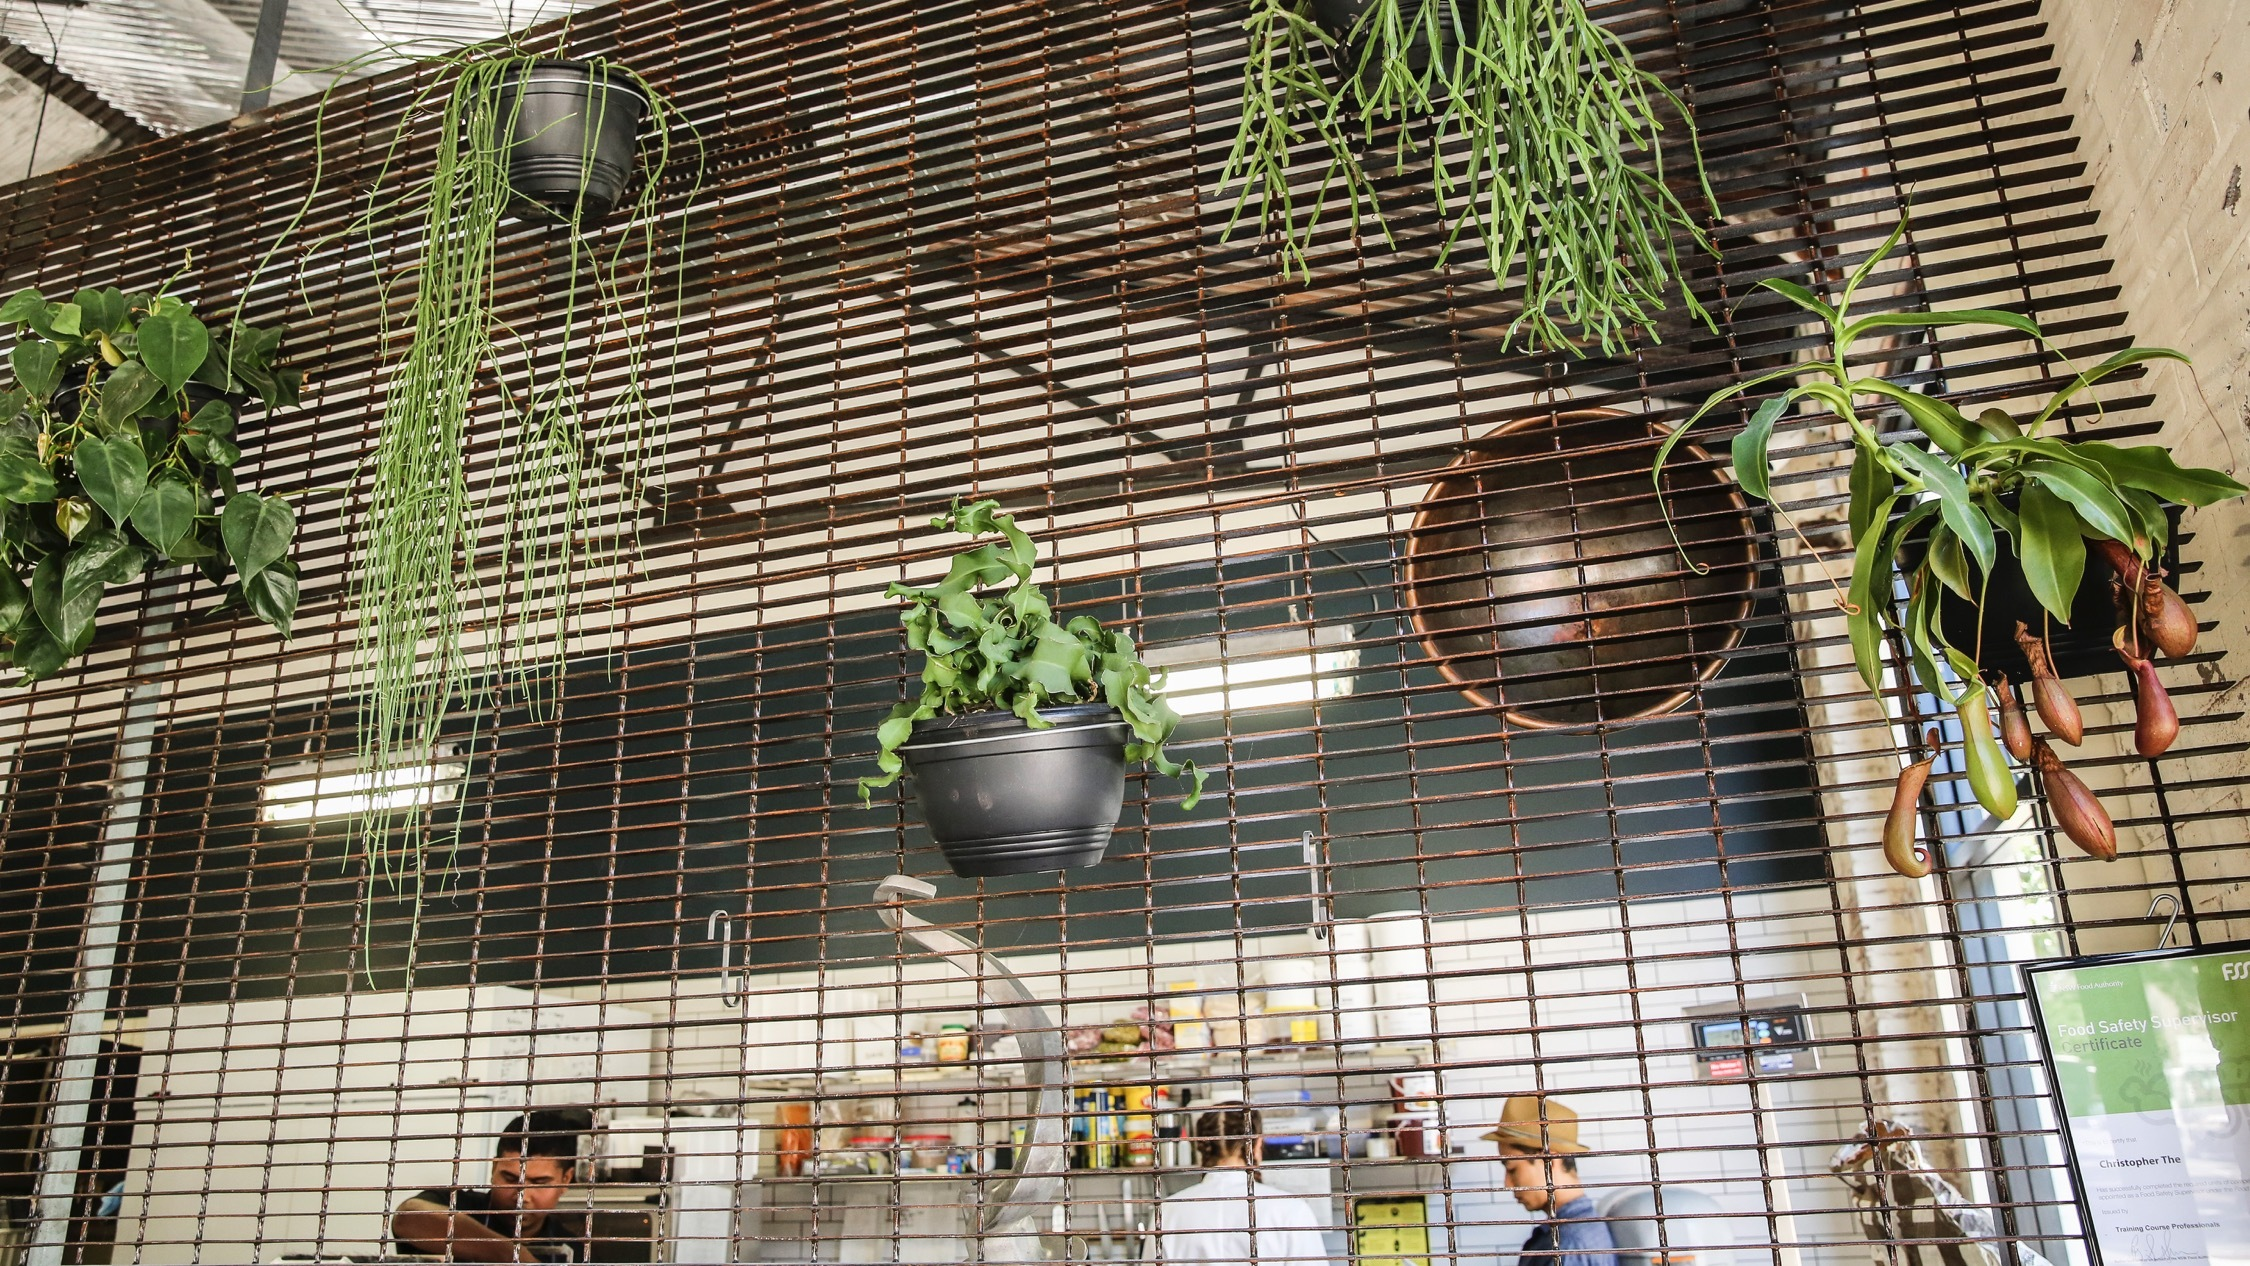 Green plants at Black Star Pastry - Rosebery